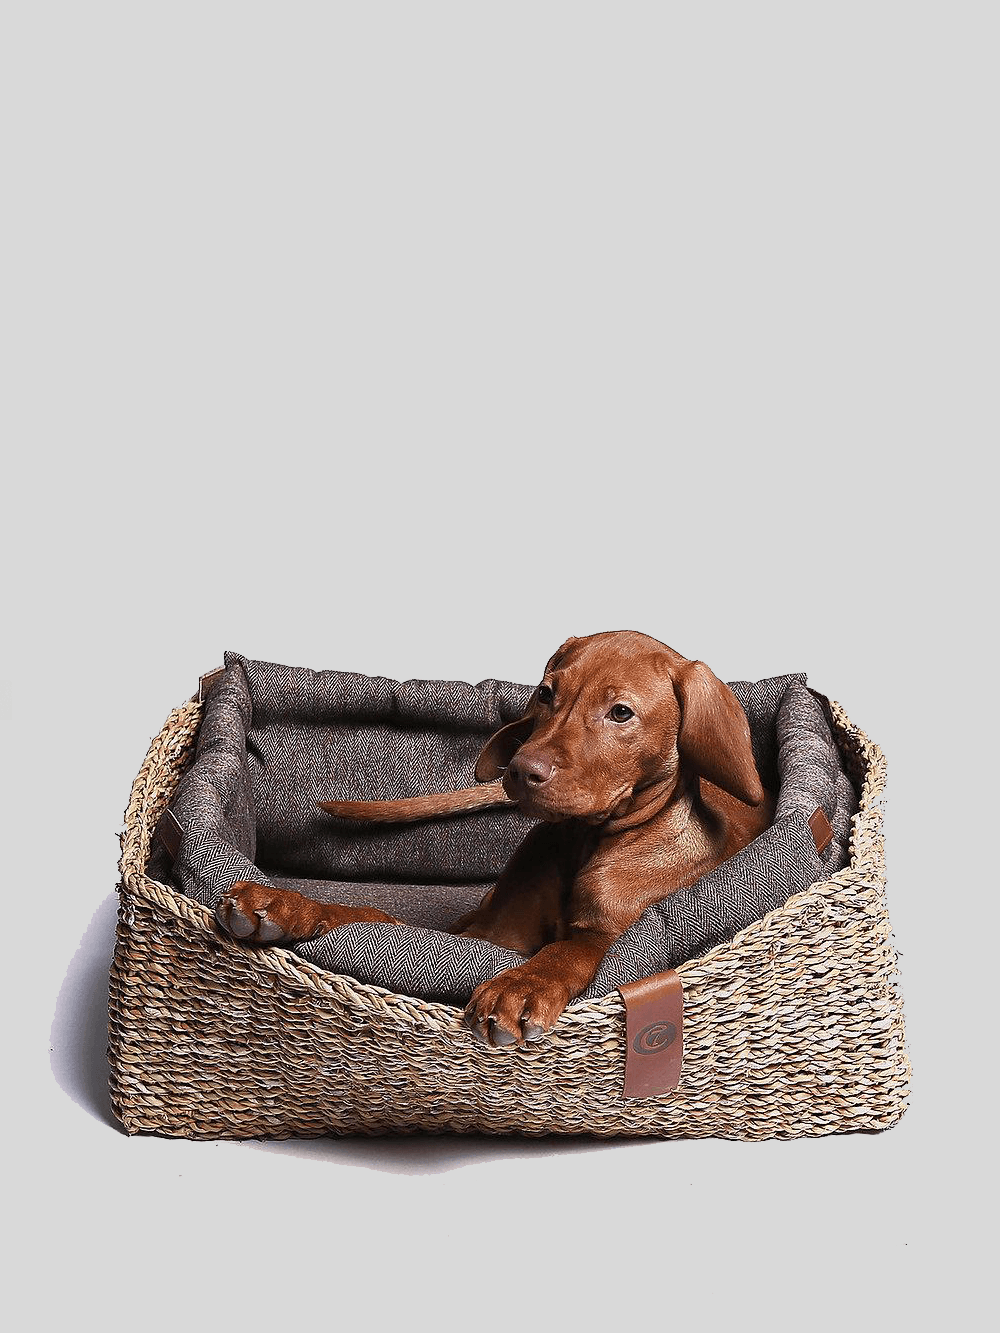 Dog Bed Hideaway - Herringbone Brown Dog Bed Cloud7